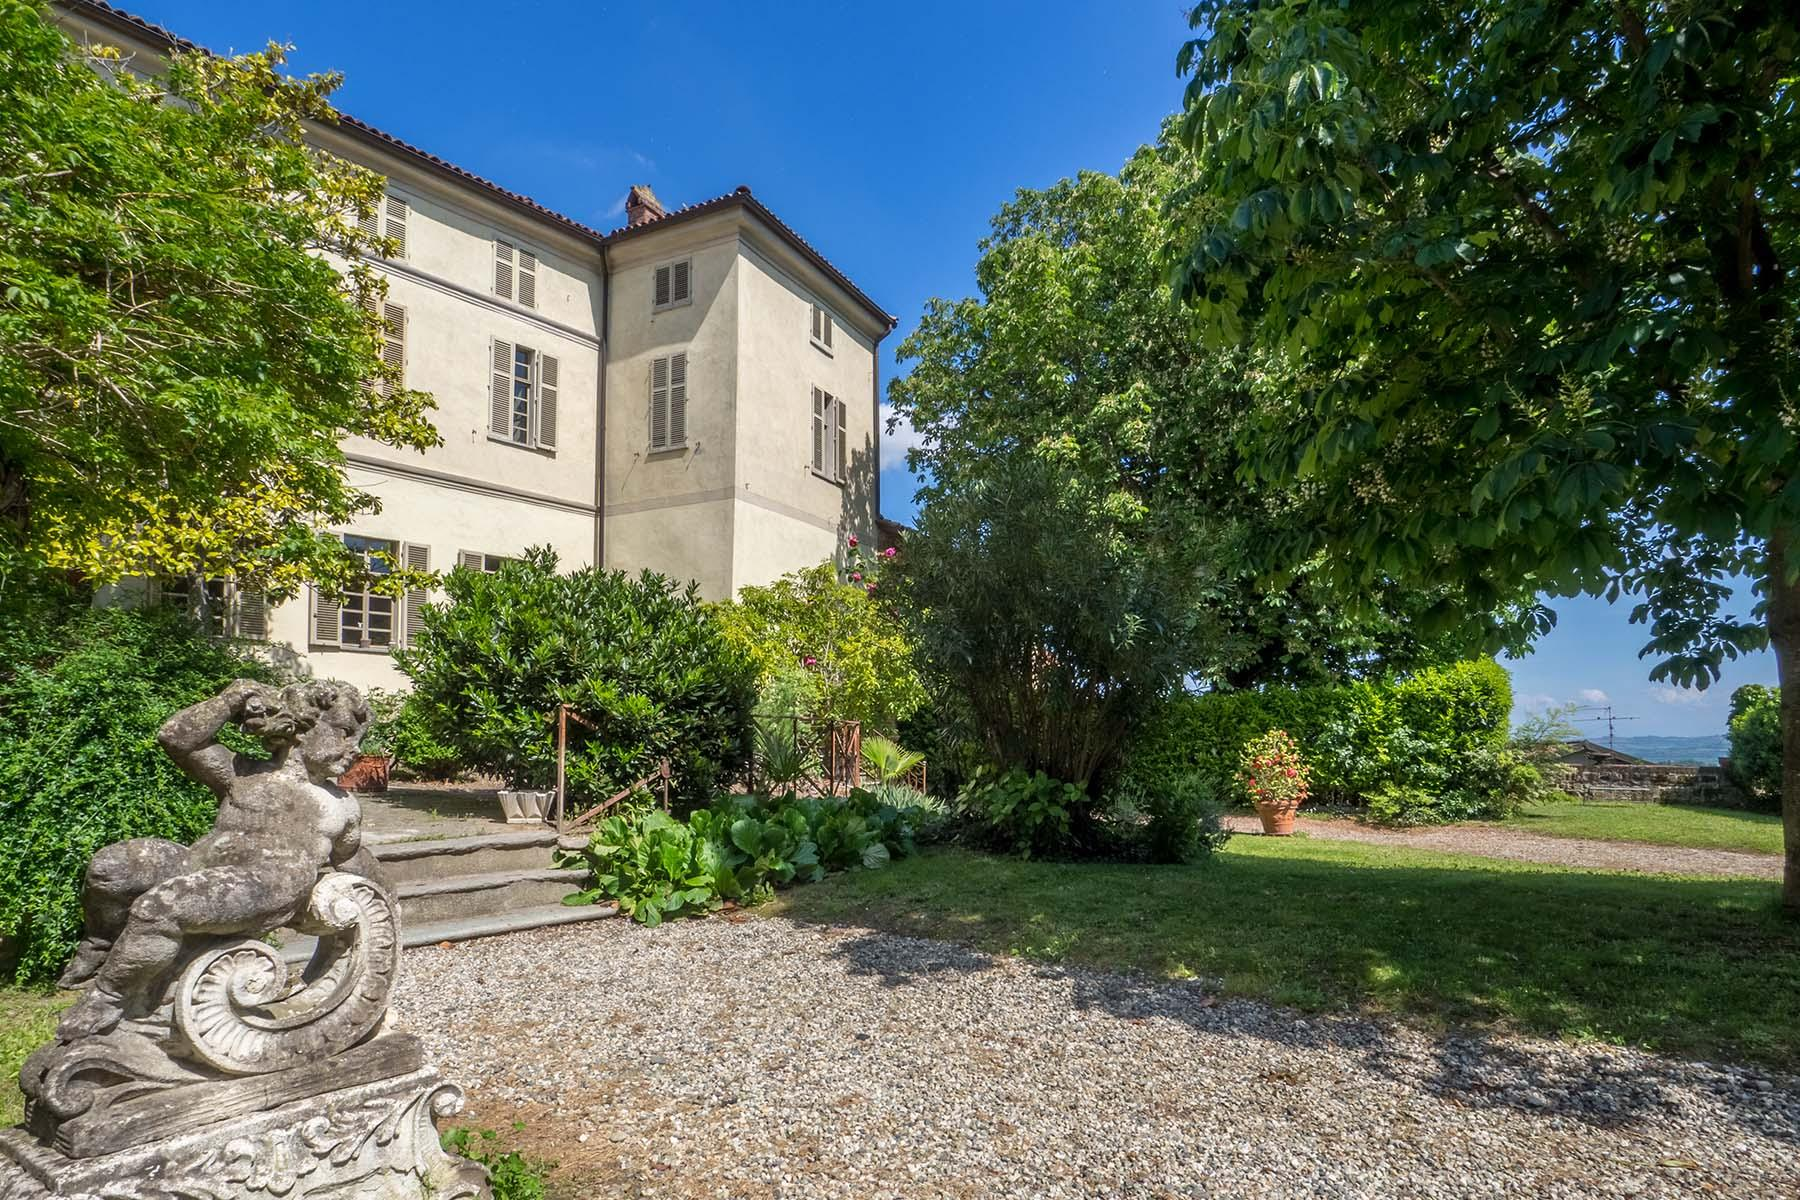 Enchanting historical villa in the heart of the Monferrato region - 1